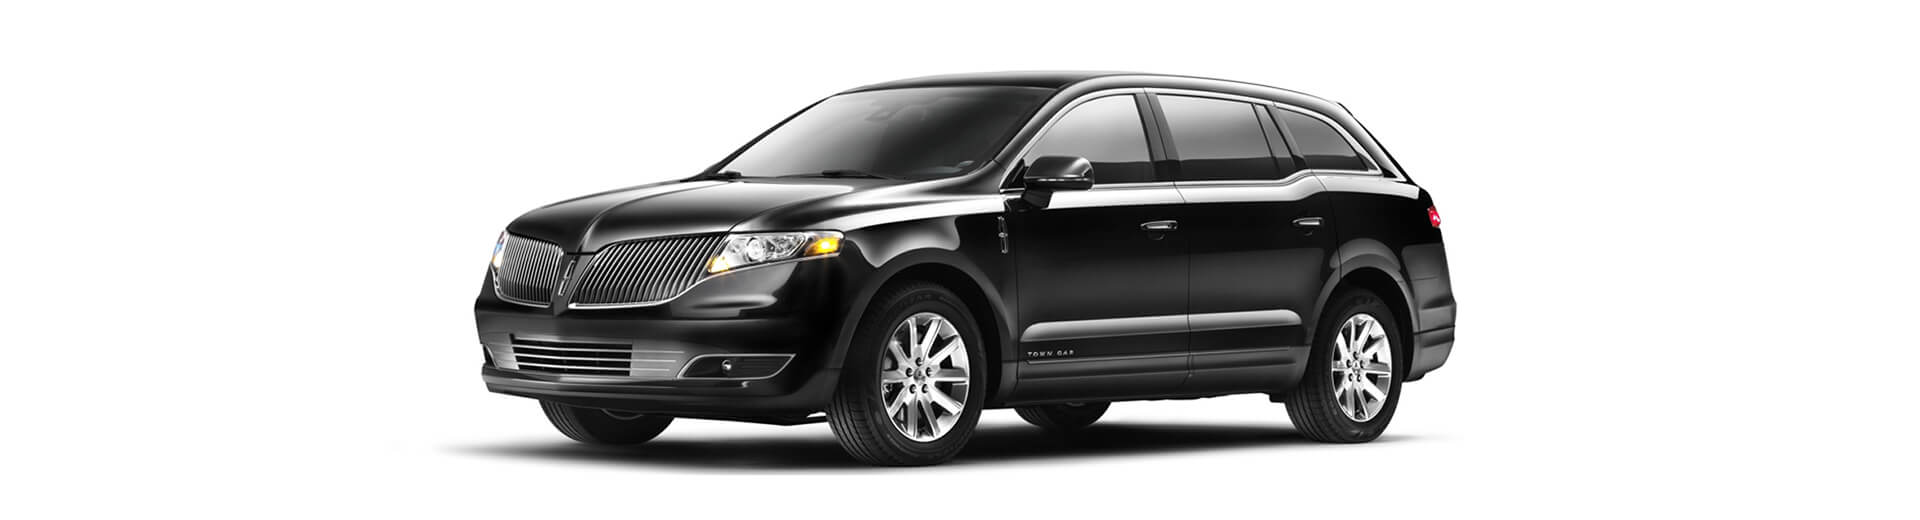 lincoln_mkt_new-1